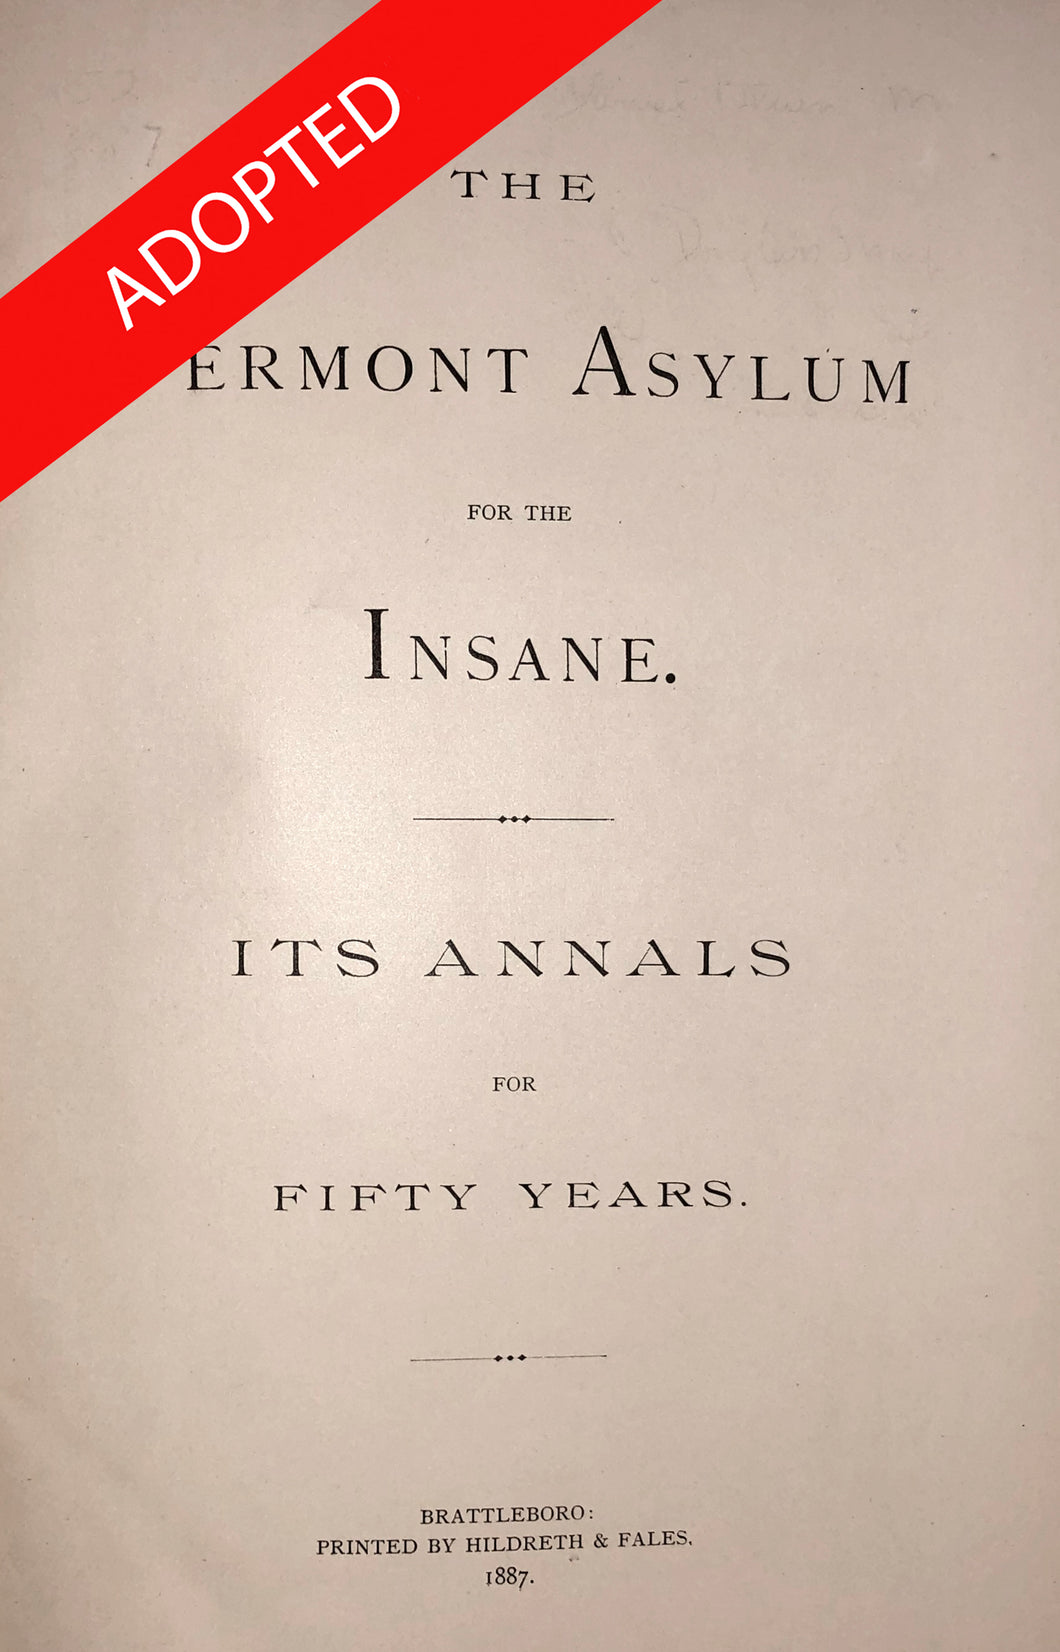 The Vermont asylum for the insane : its annals for fifty years